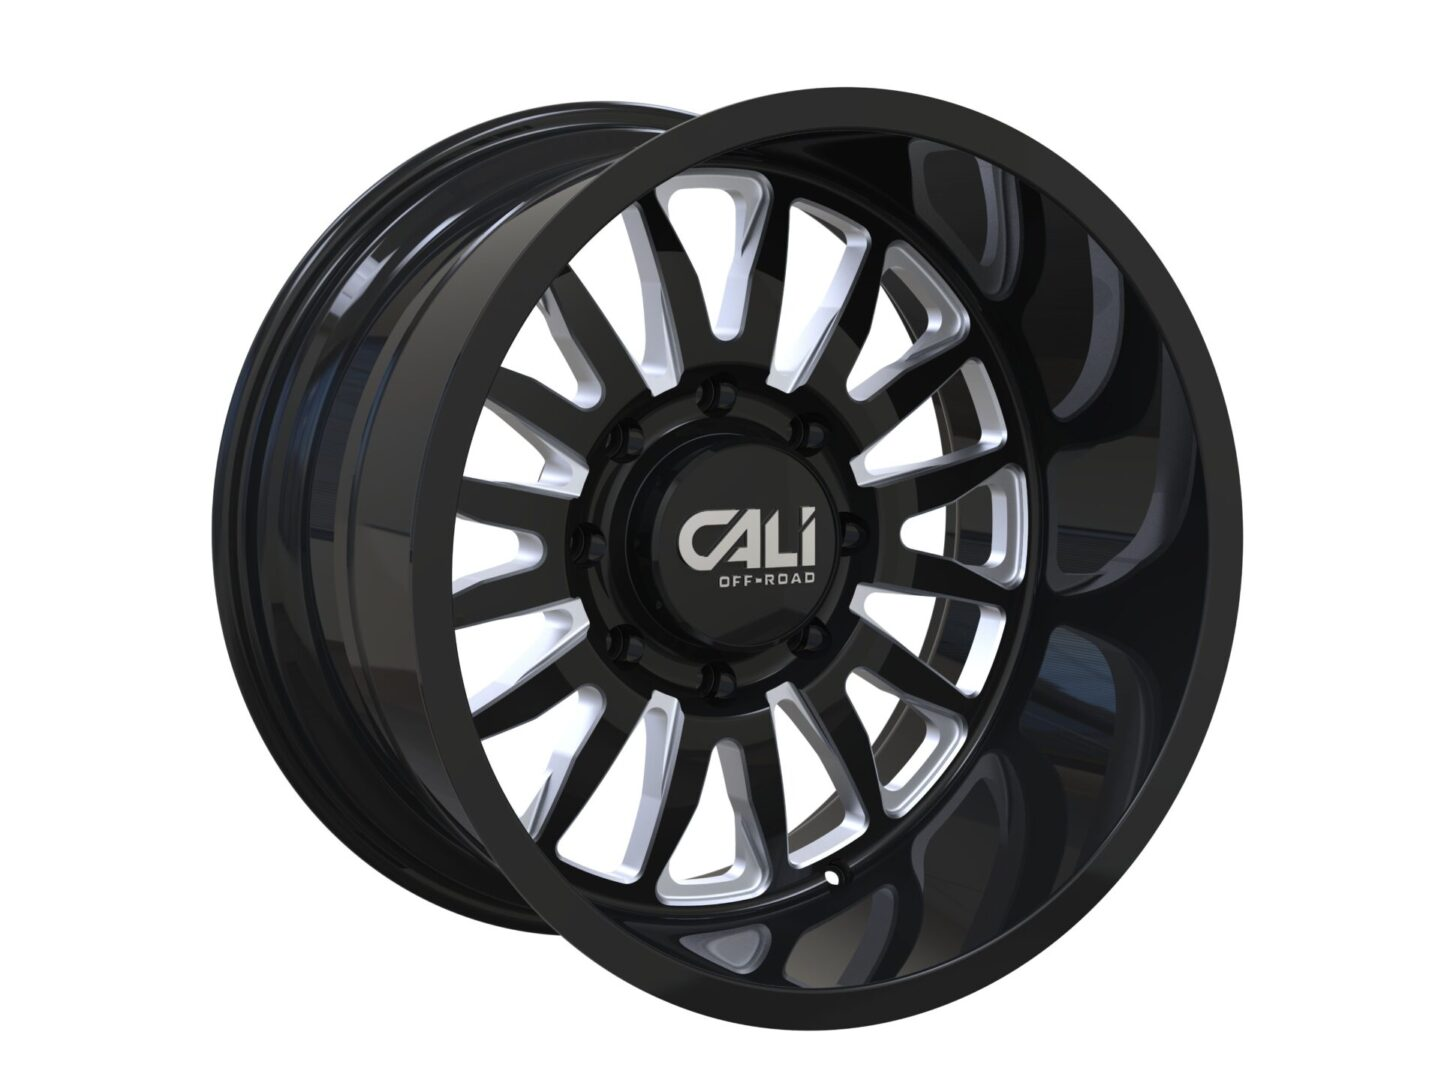 Cali Offroad Wheel 9110 black and machined